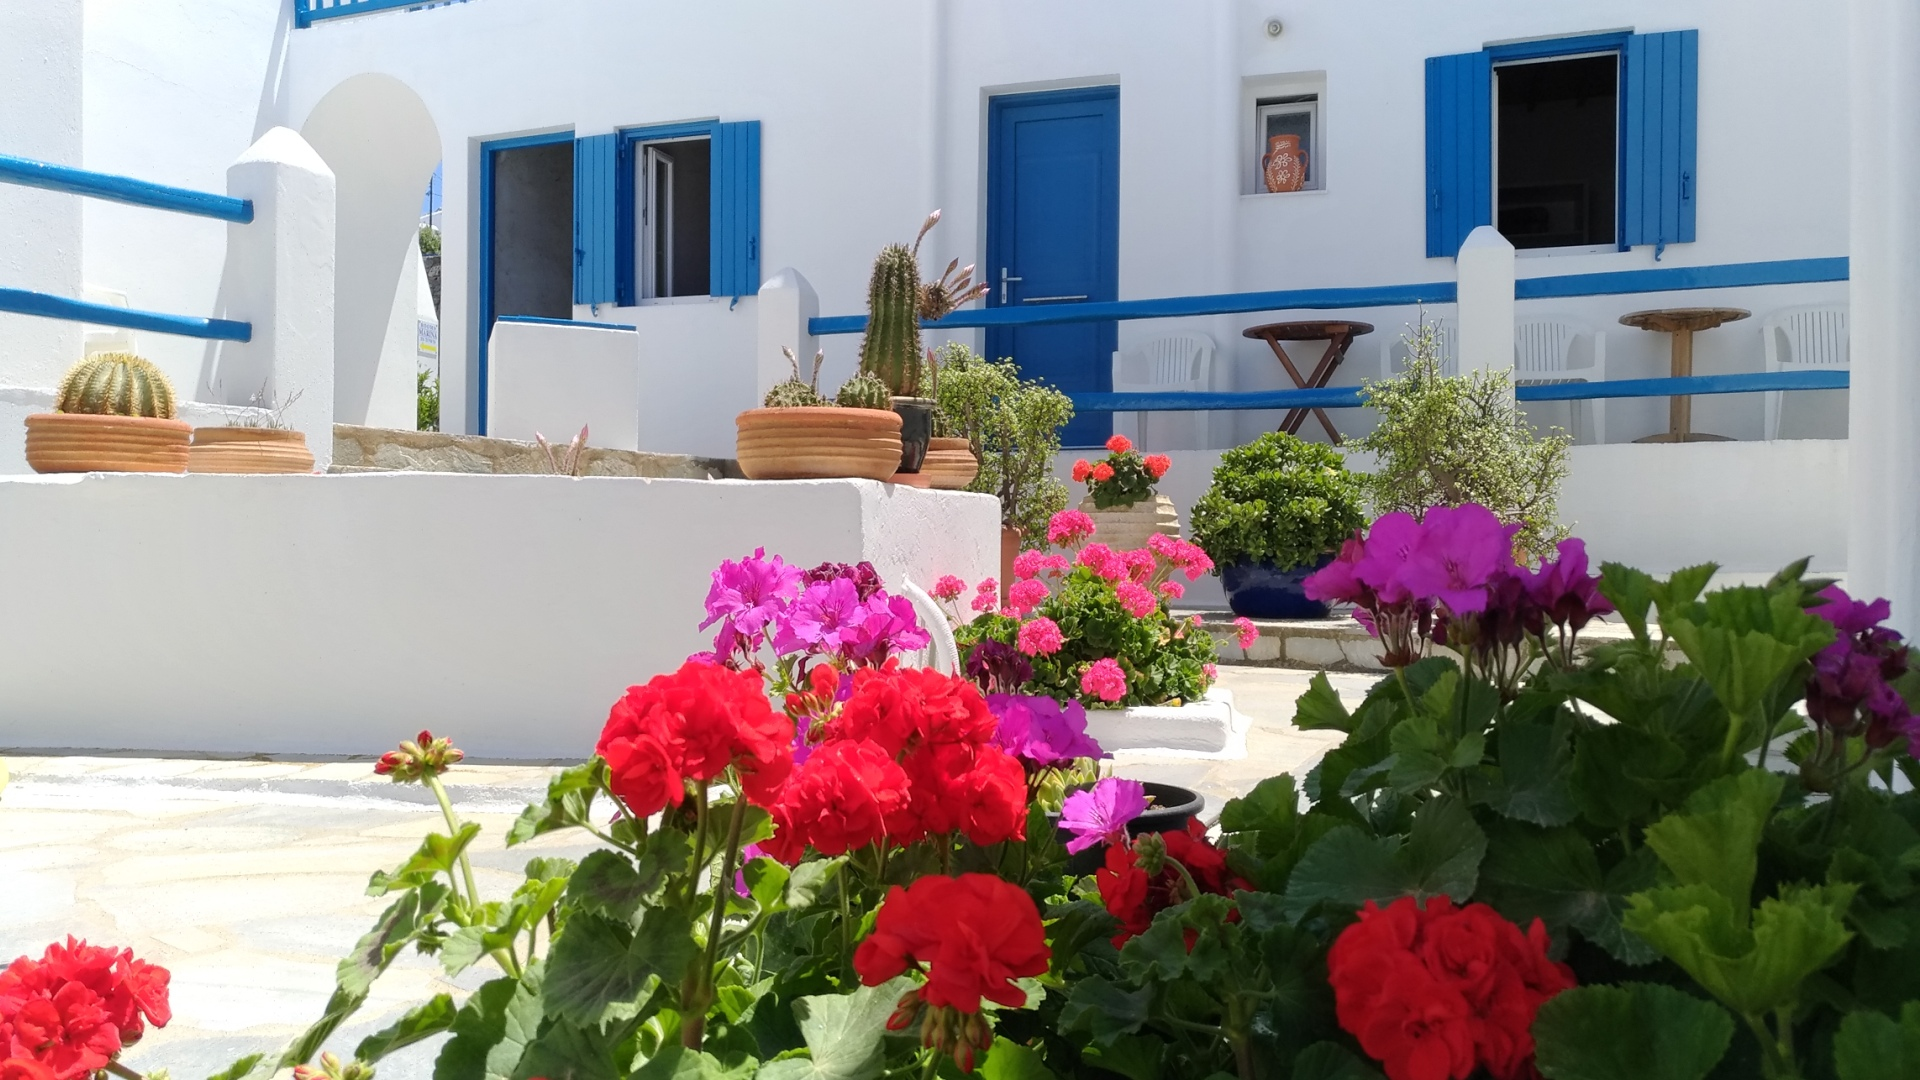 Mykonos Marina In Town - Rooms for rent - Slider 3